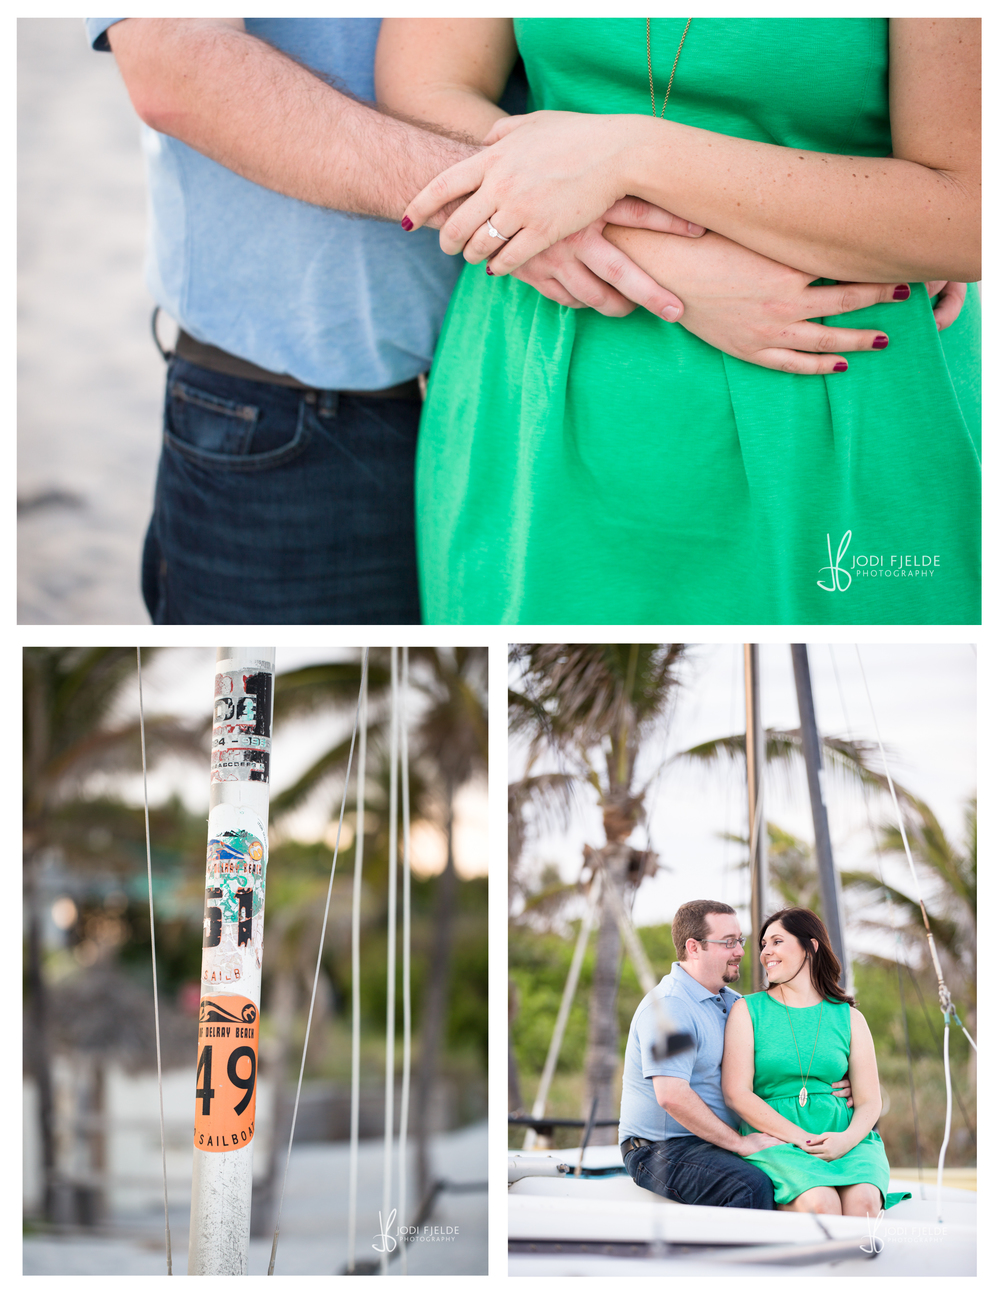 Delray_BEach_Sundy_HouseFlorida_engagement_E-session_Allison_&_Matt_photography_jodi_Fjelde_photography_8.jpg